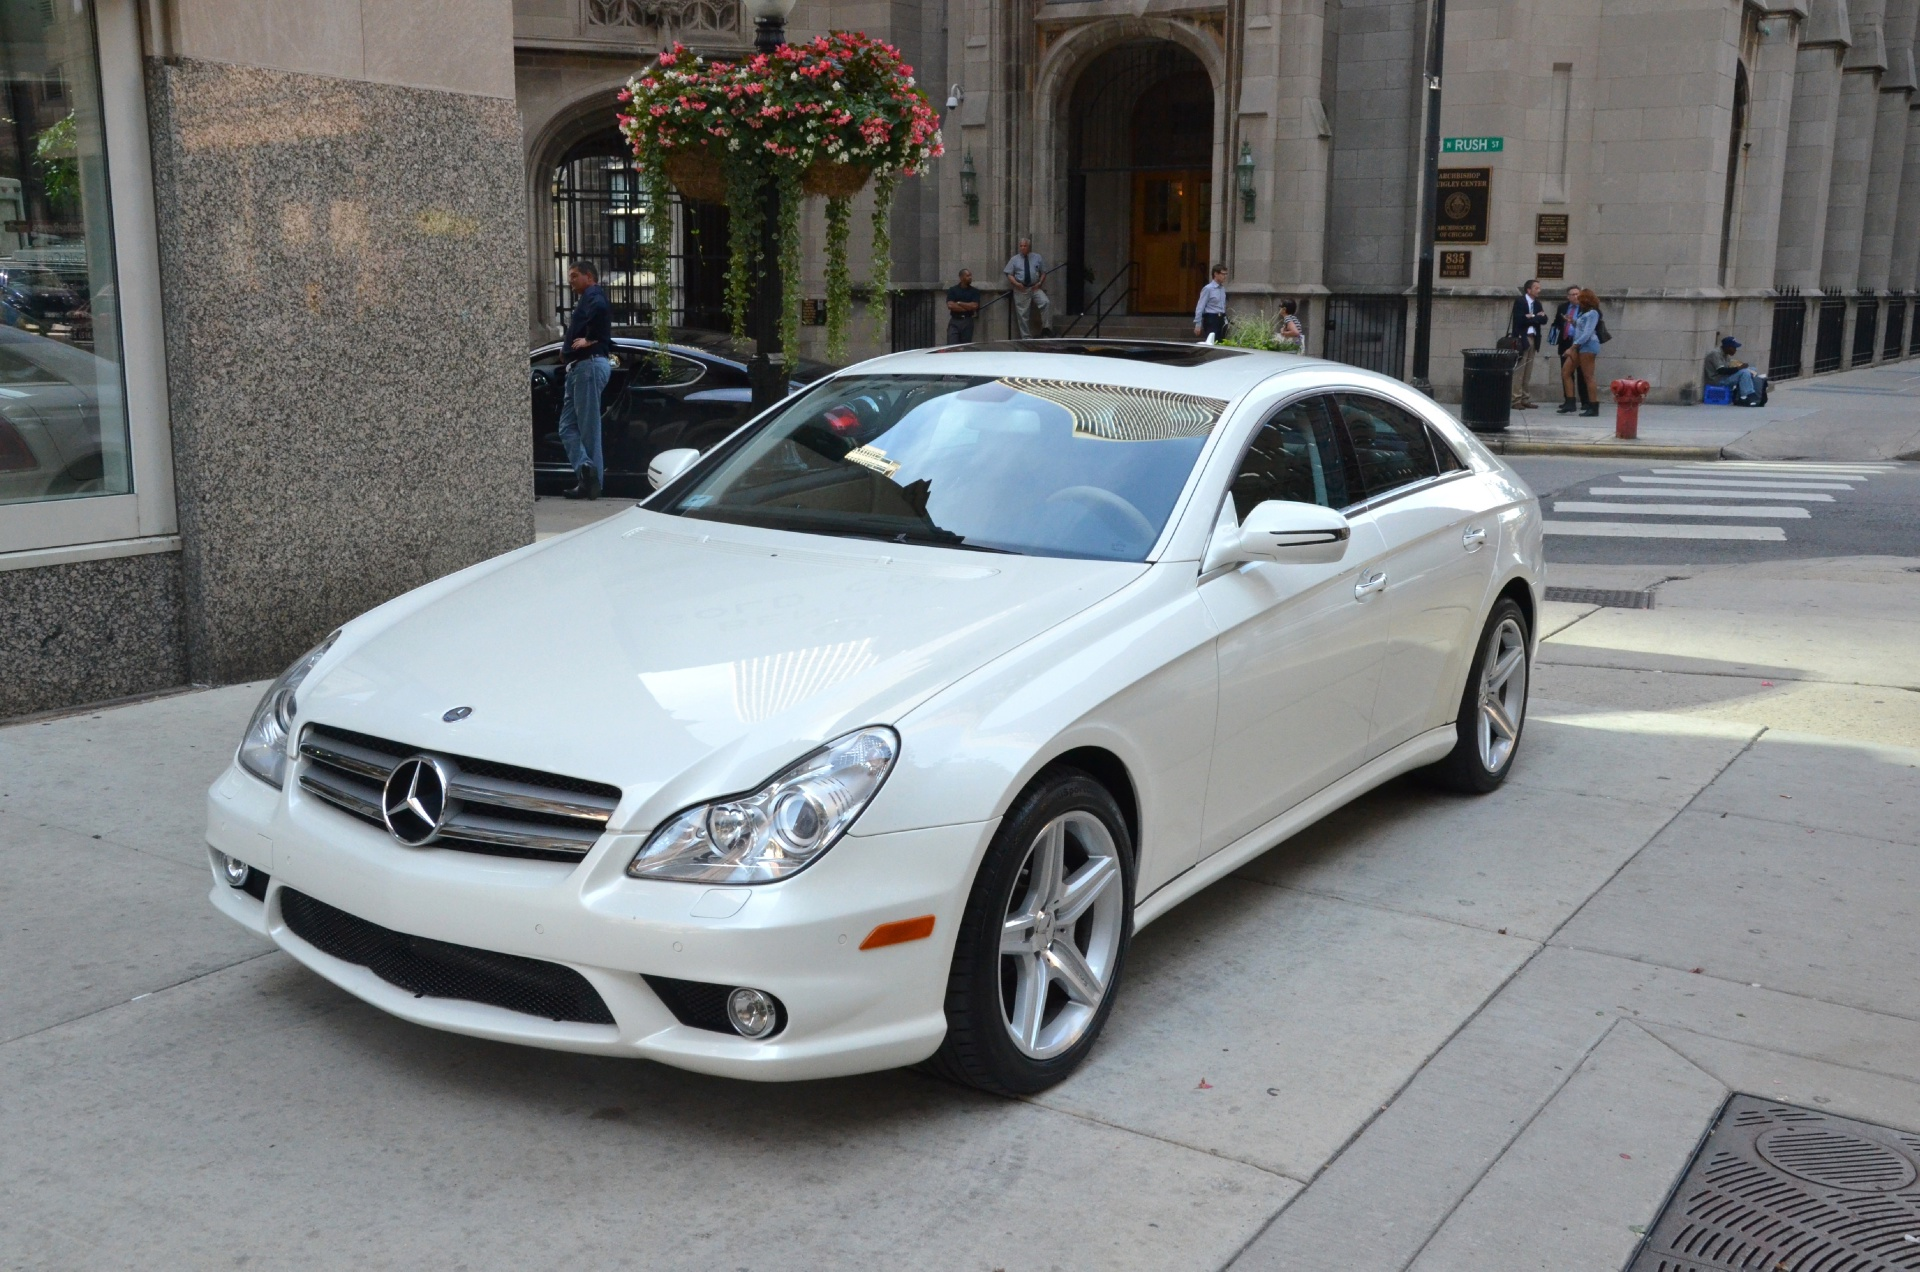 2009 mercedes benz cls class cls550 used bentley used for 2009 mercedes benz cls class